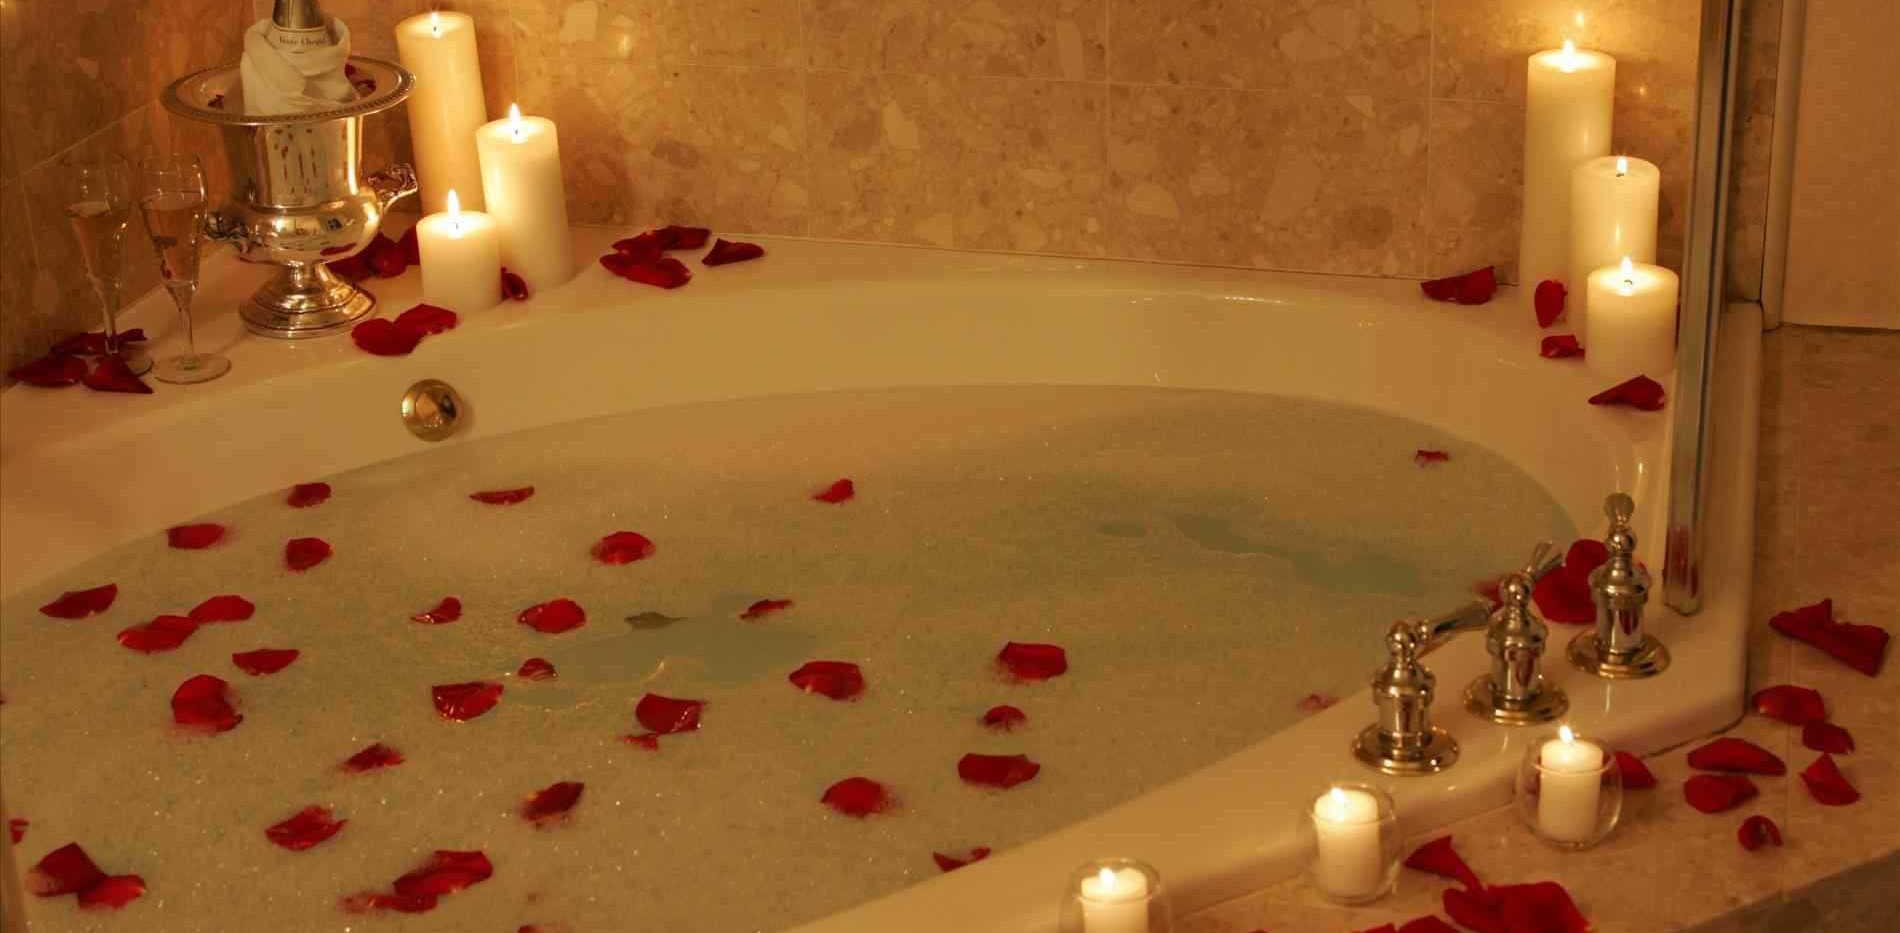 decorative-bed-with-flowers-and-candles-